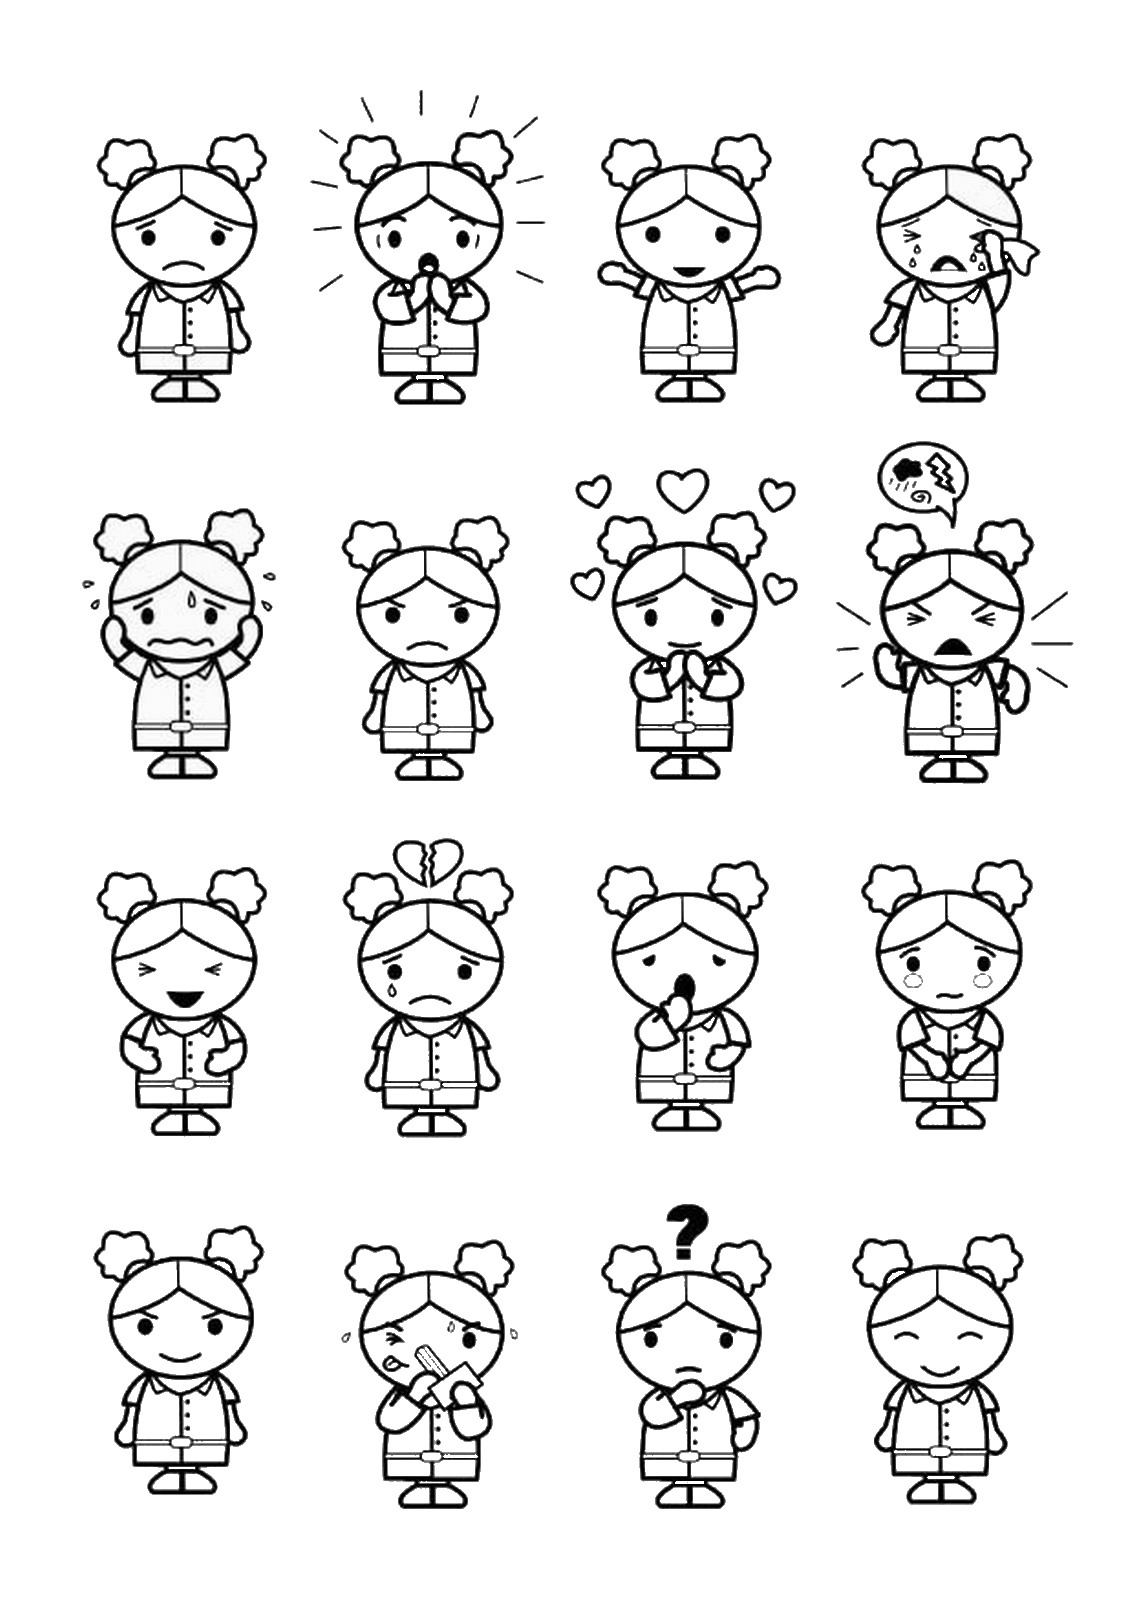 coloring emotions for kids emotions coloring page with images counseling coloring emotions kids for